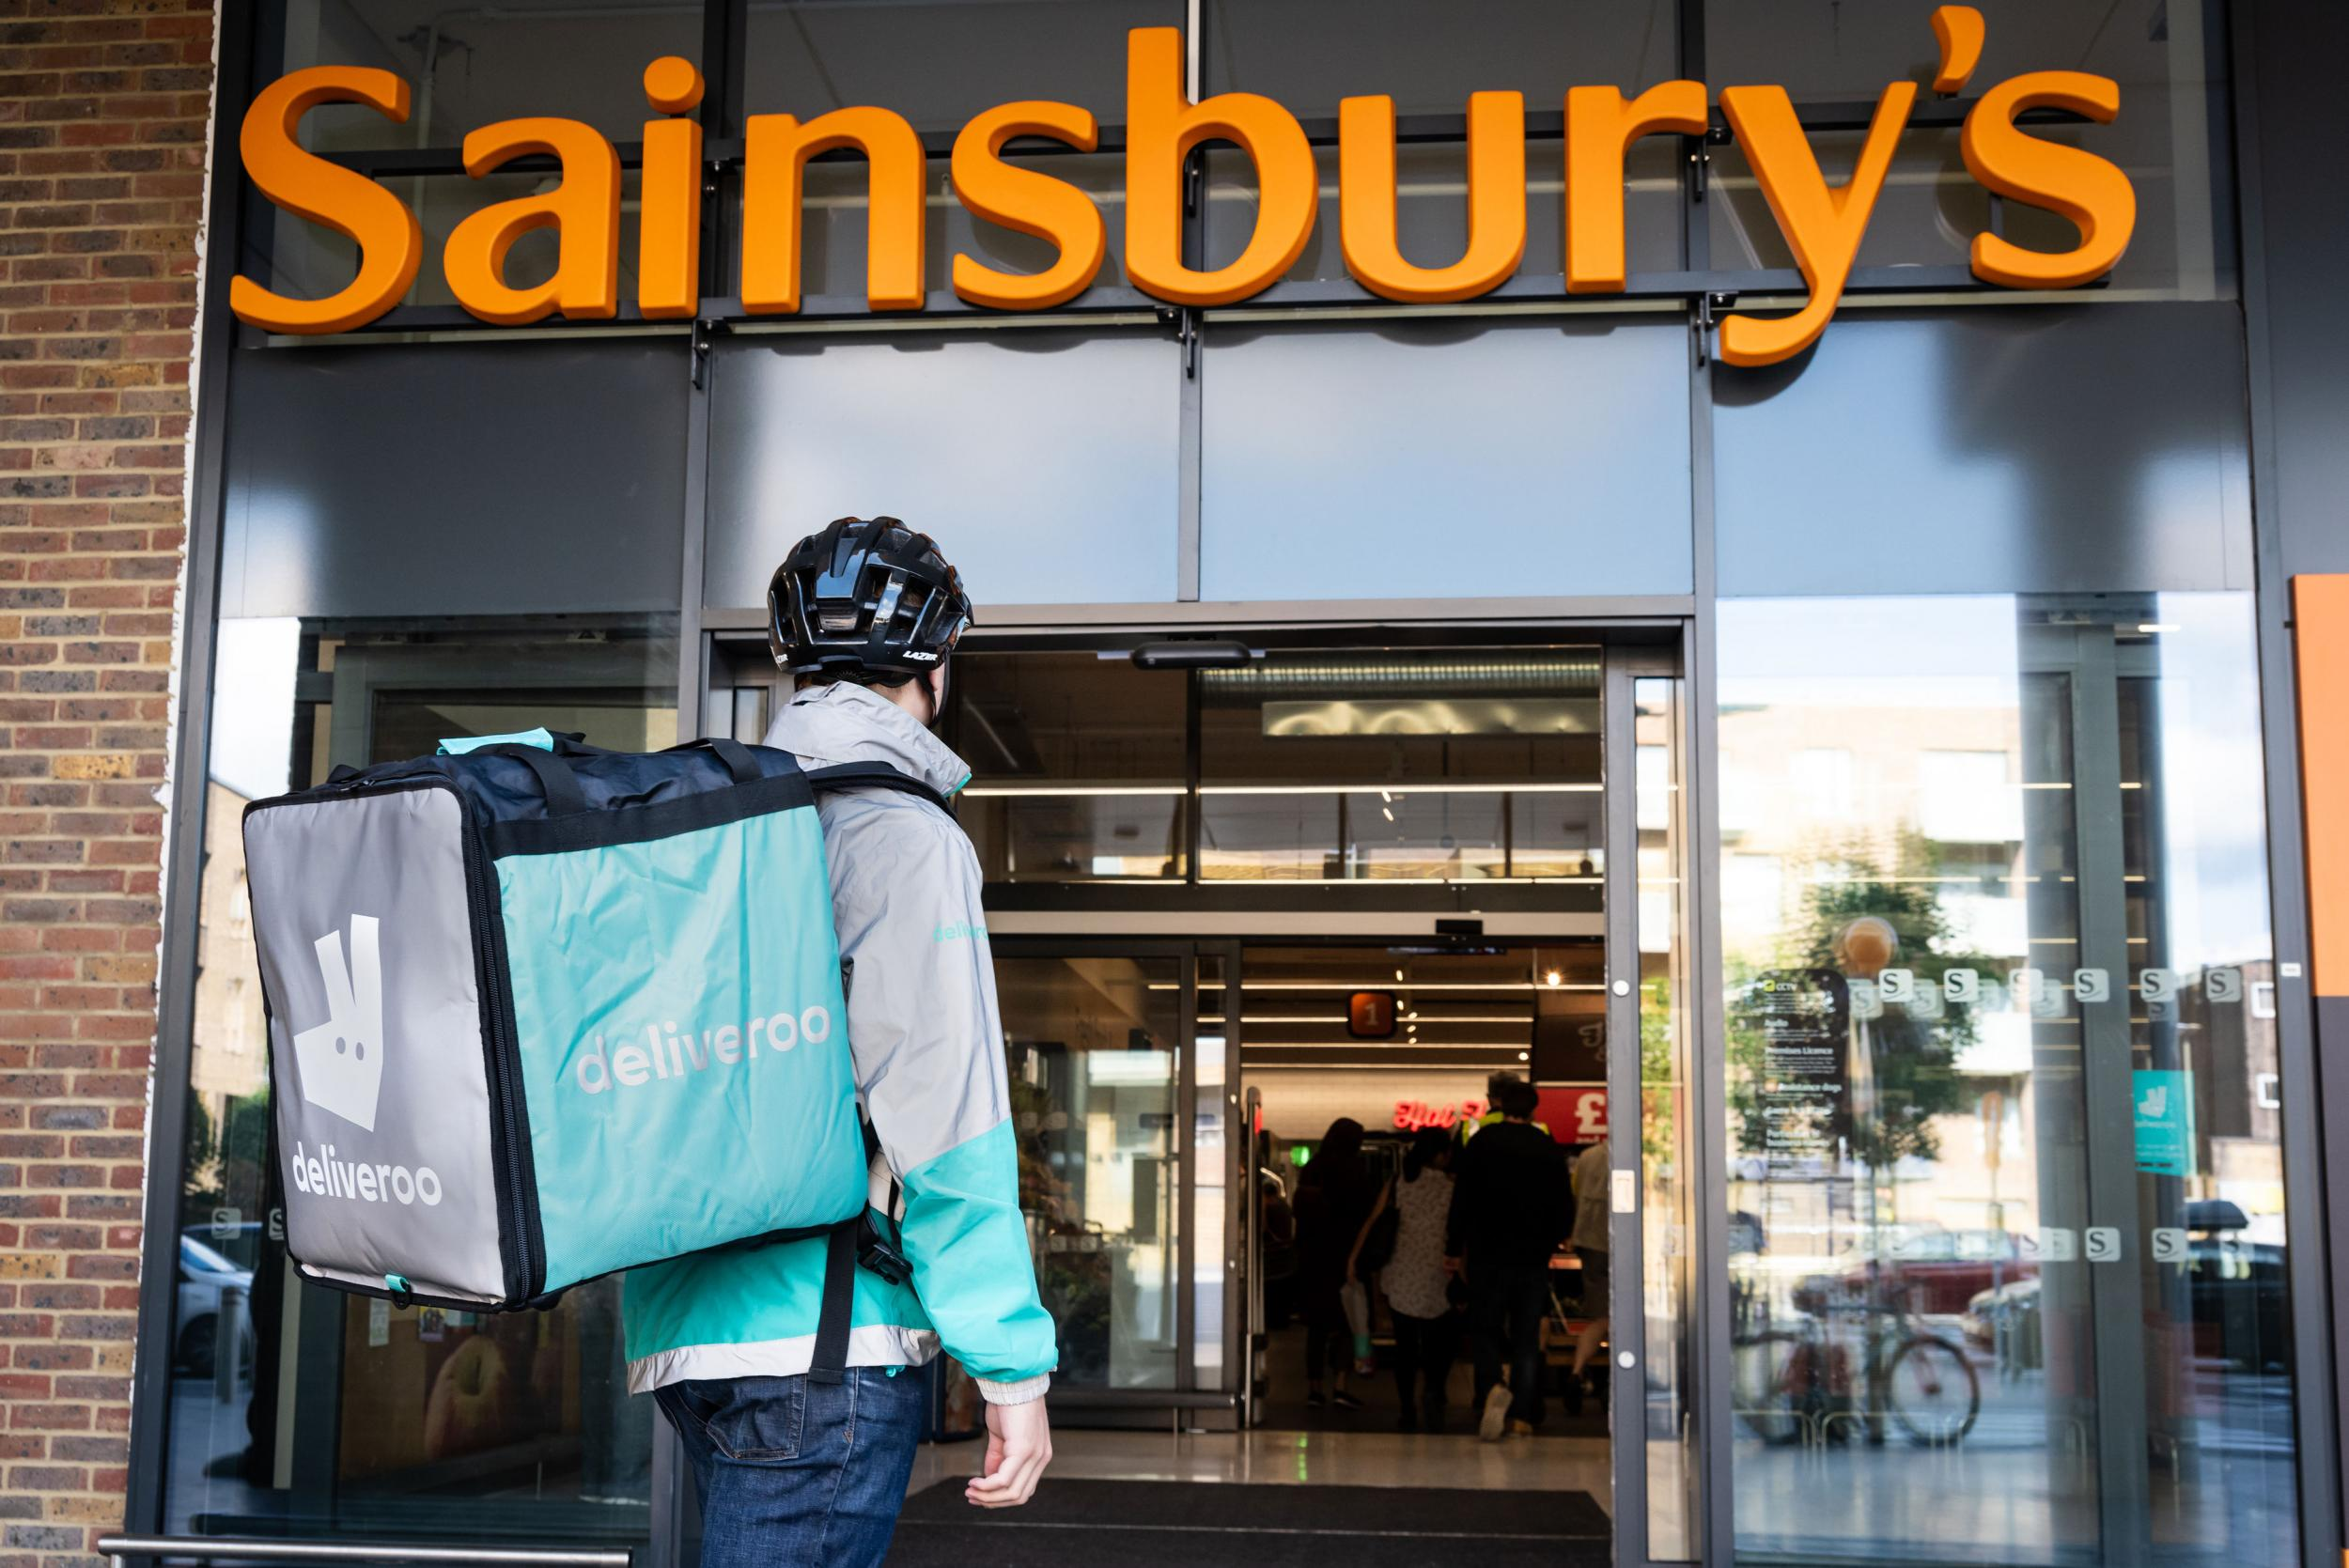 Sainbury's and Deliveroo team up to offer hot takeaways, sweets and dips 1